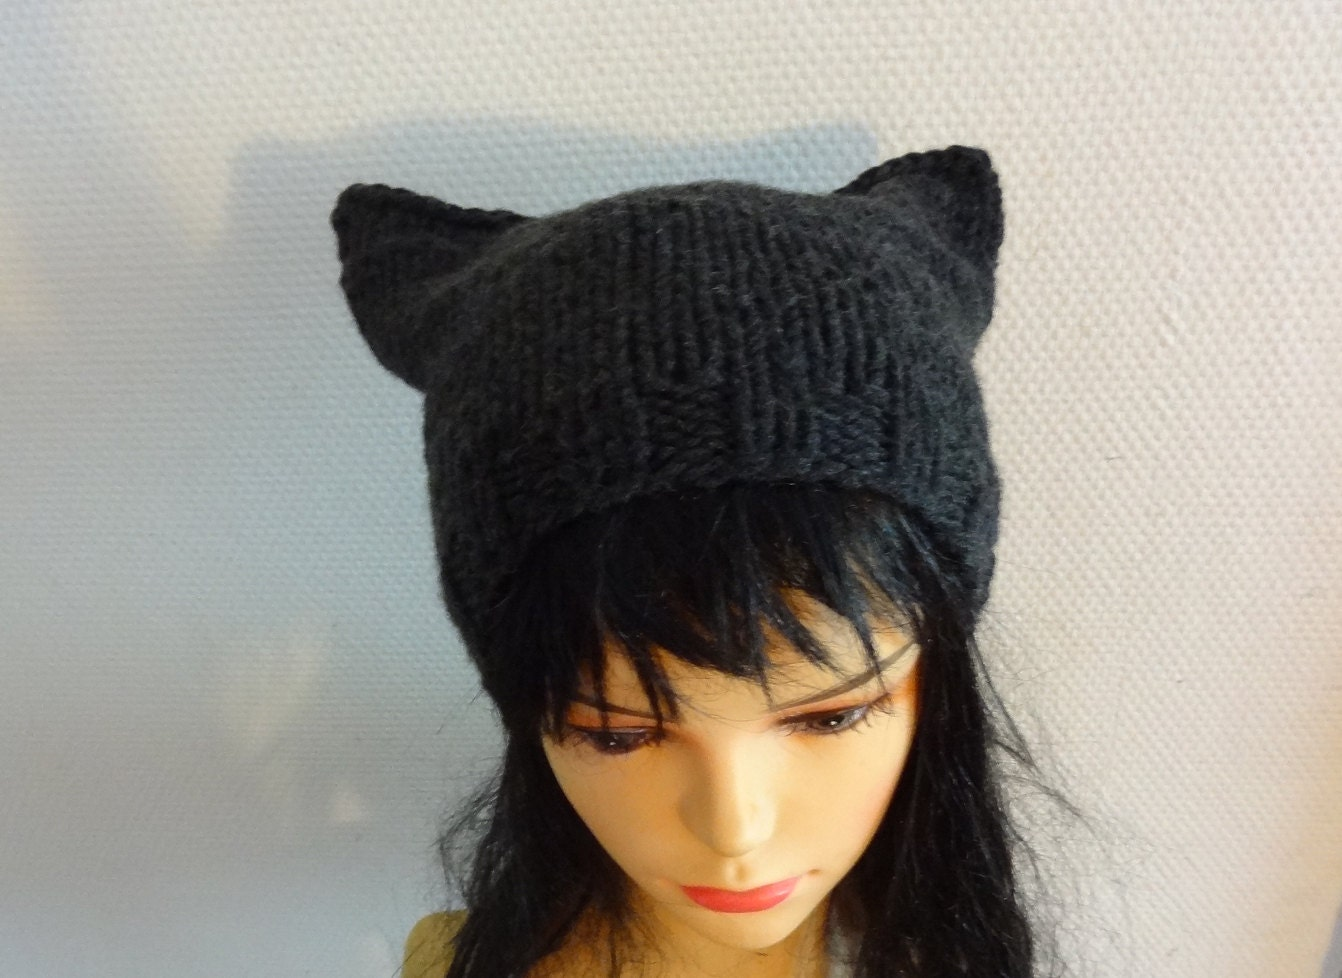 Knitting Patterns For Hats With Cat Ears : Cat Ears Hat Cat Beaie Chunky Knit Winter Accessories by Ifonka